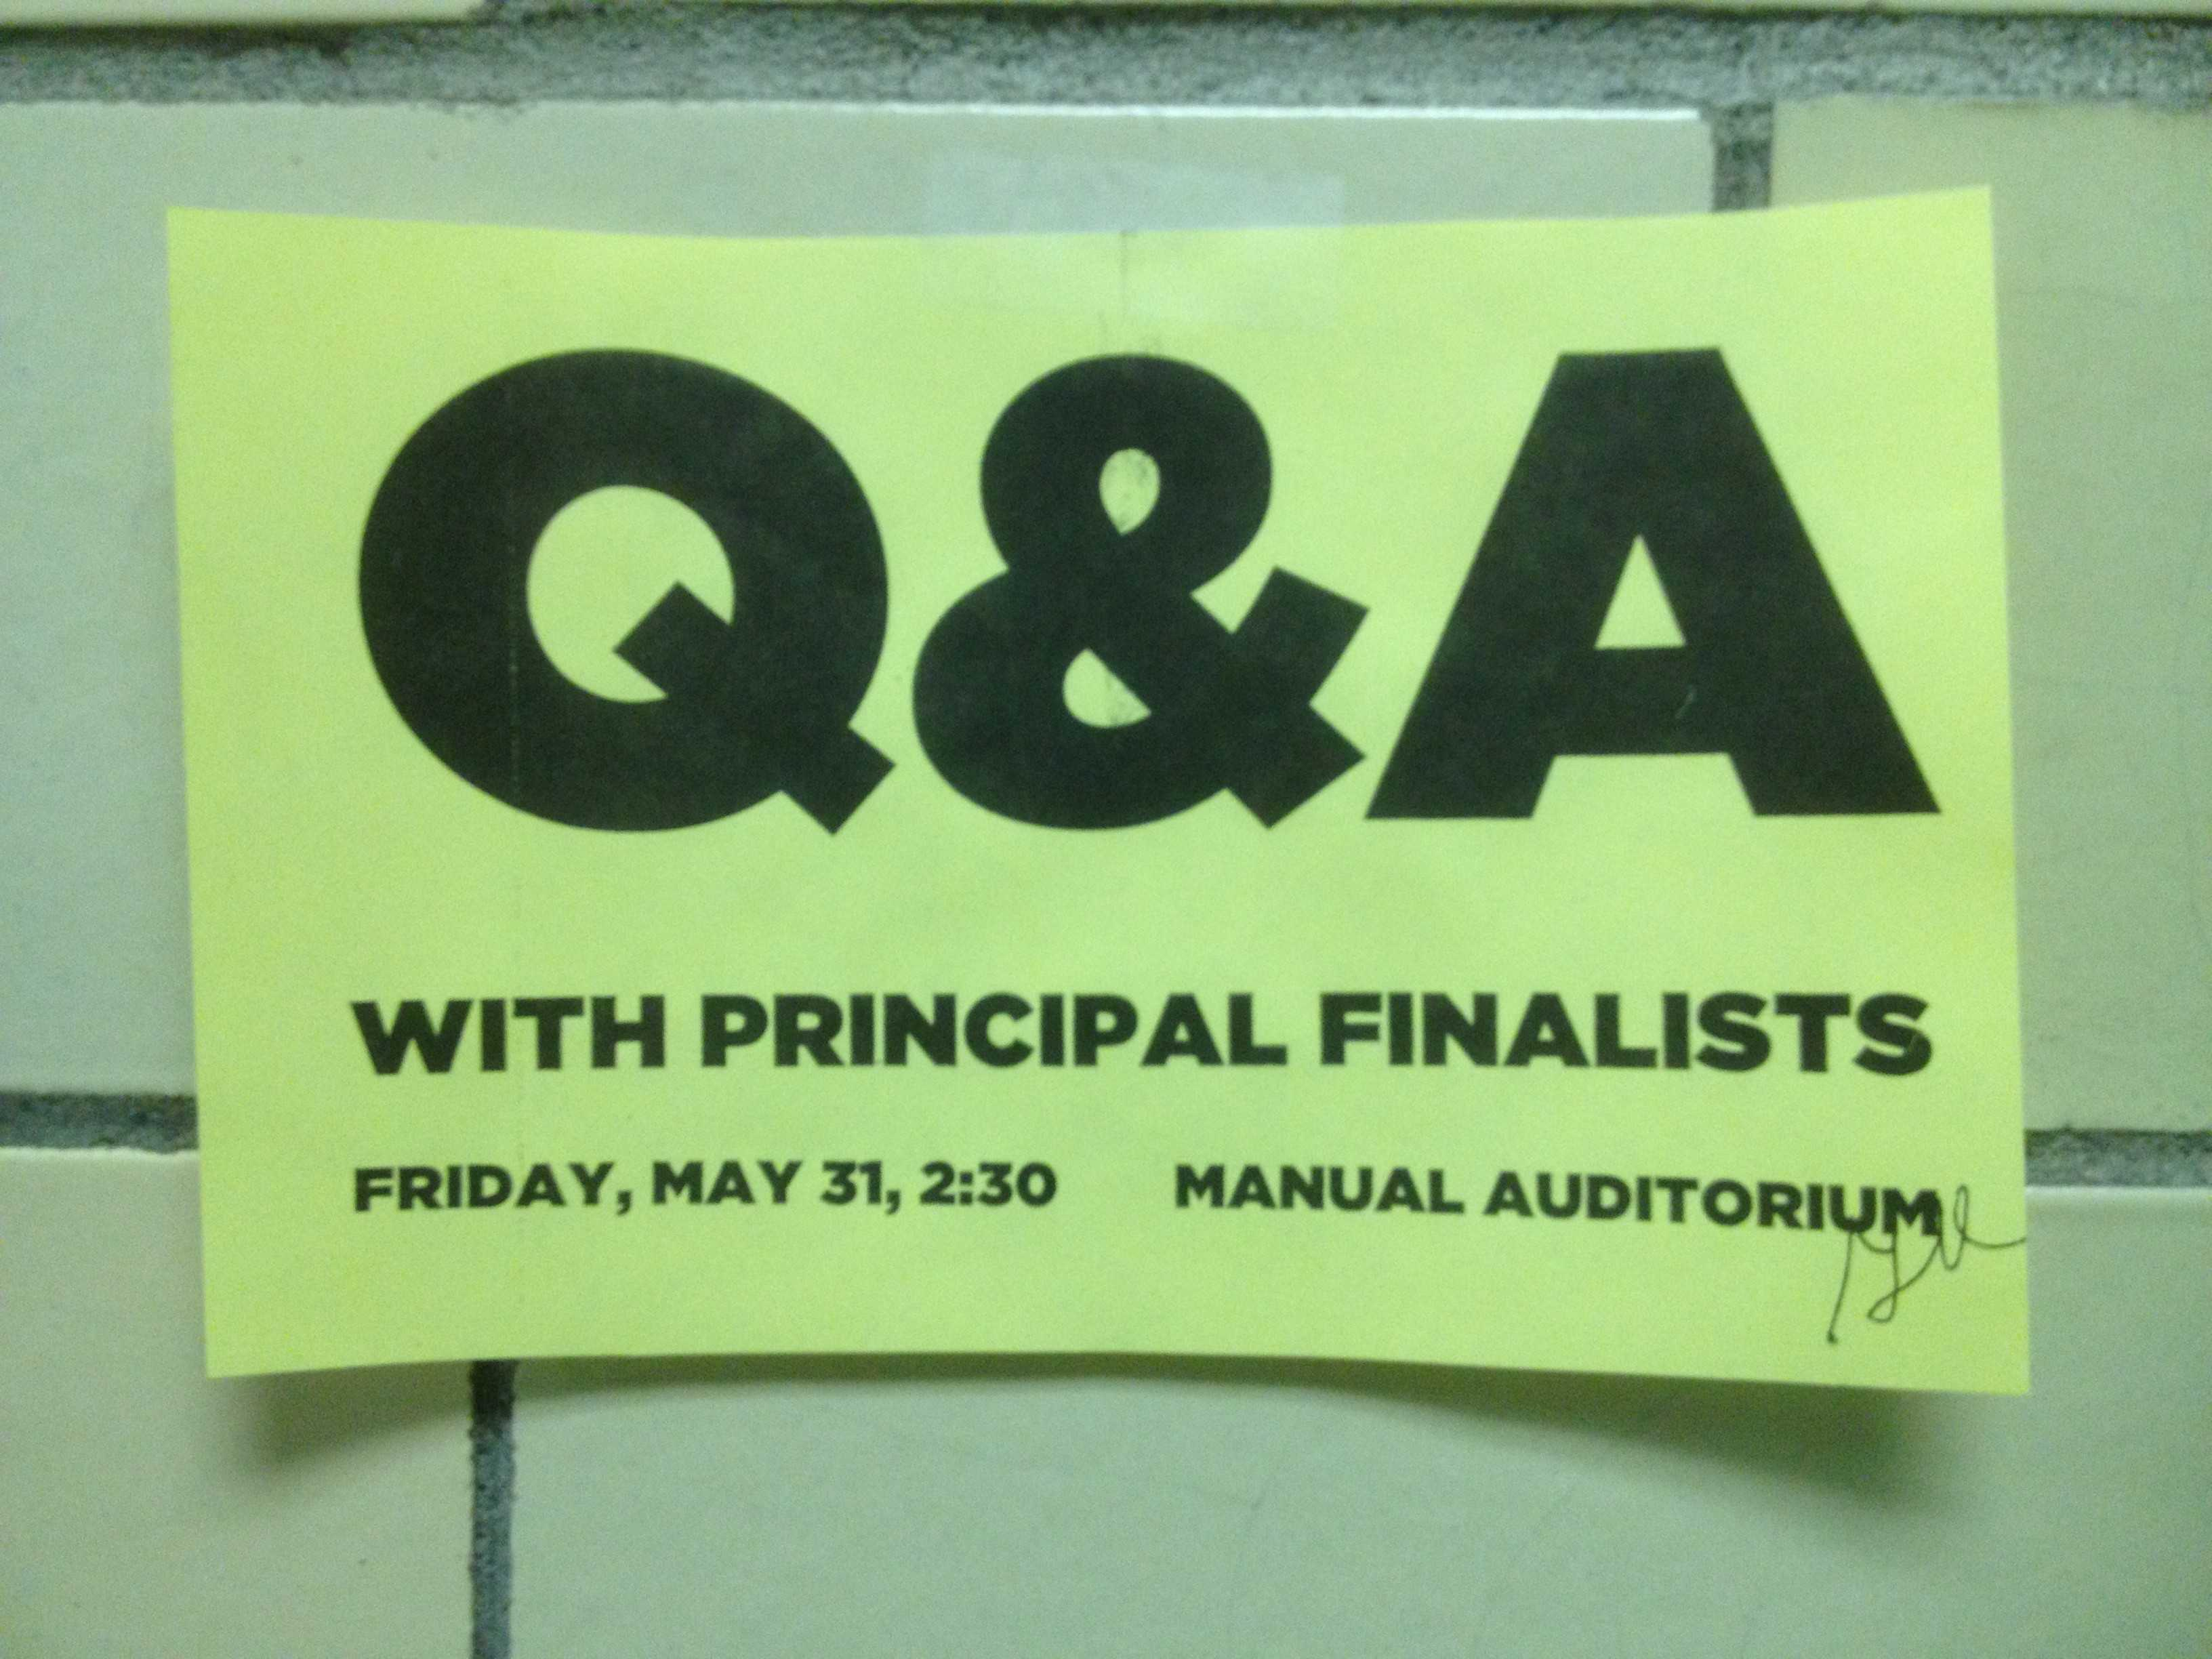 Time is running out to submit questions for principal Q&A